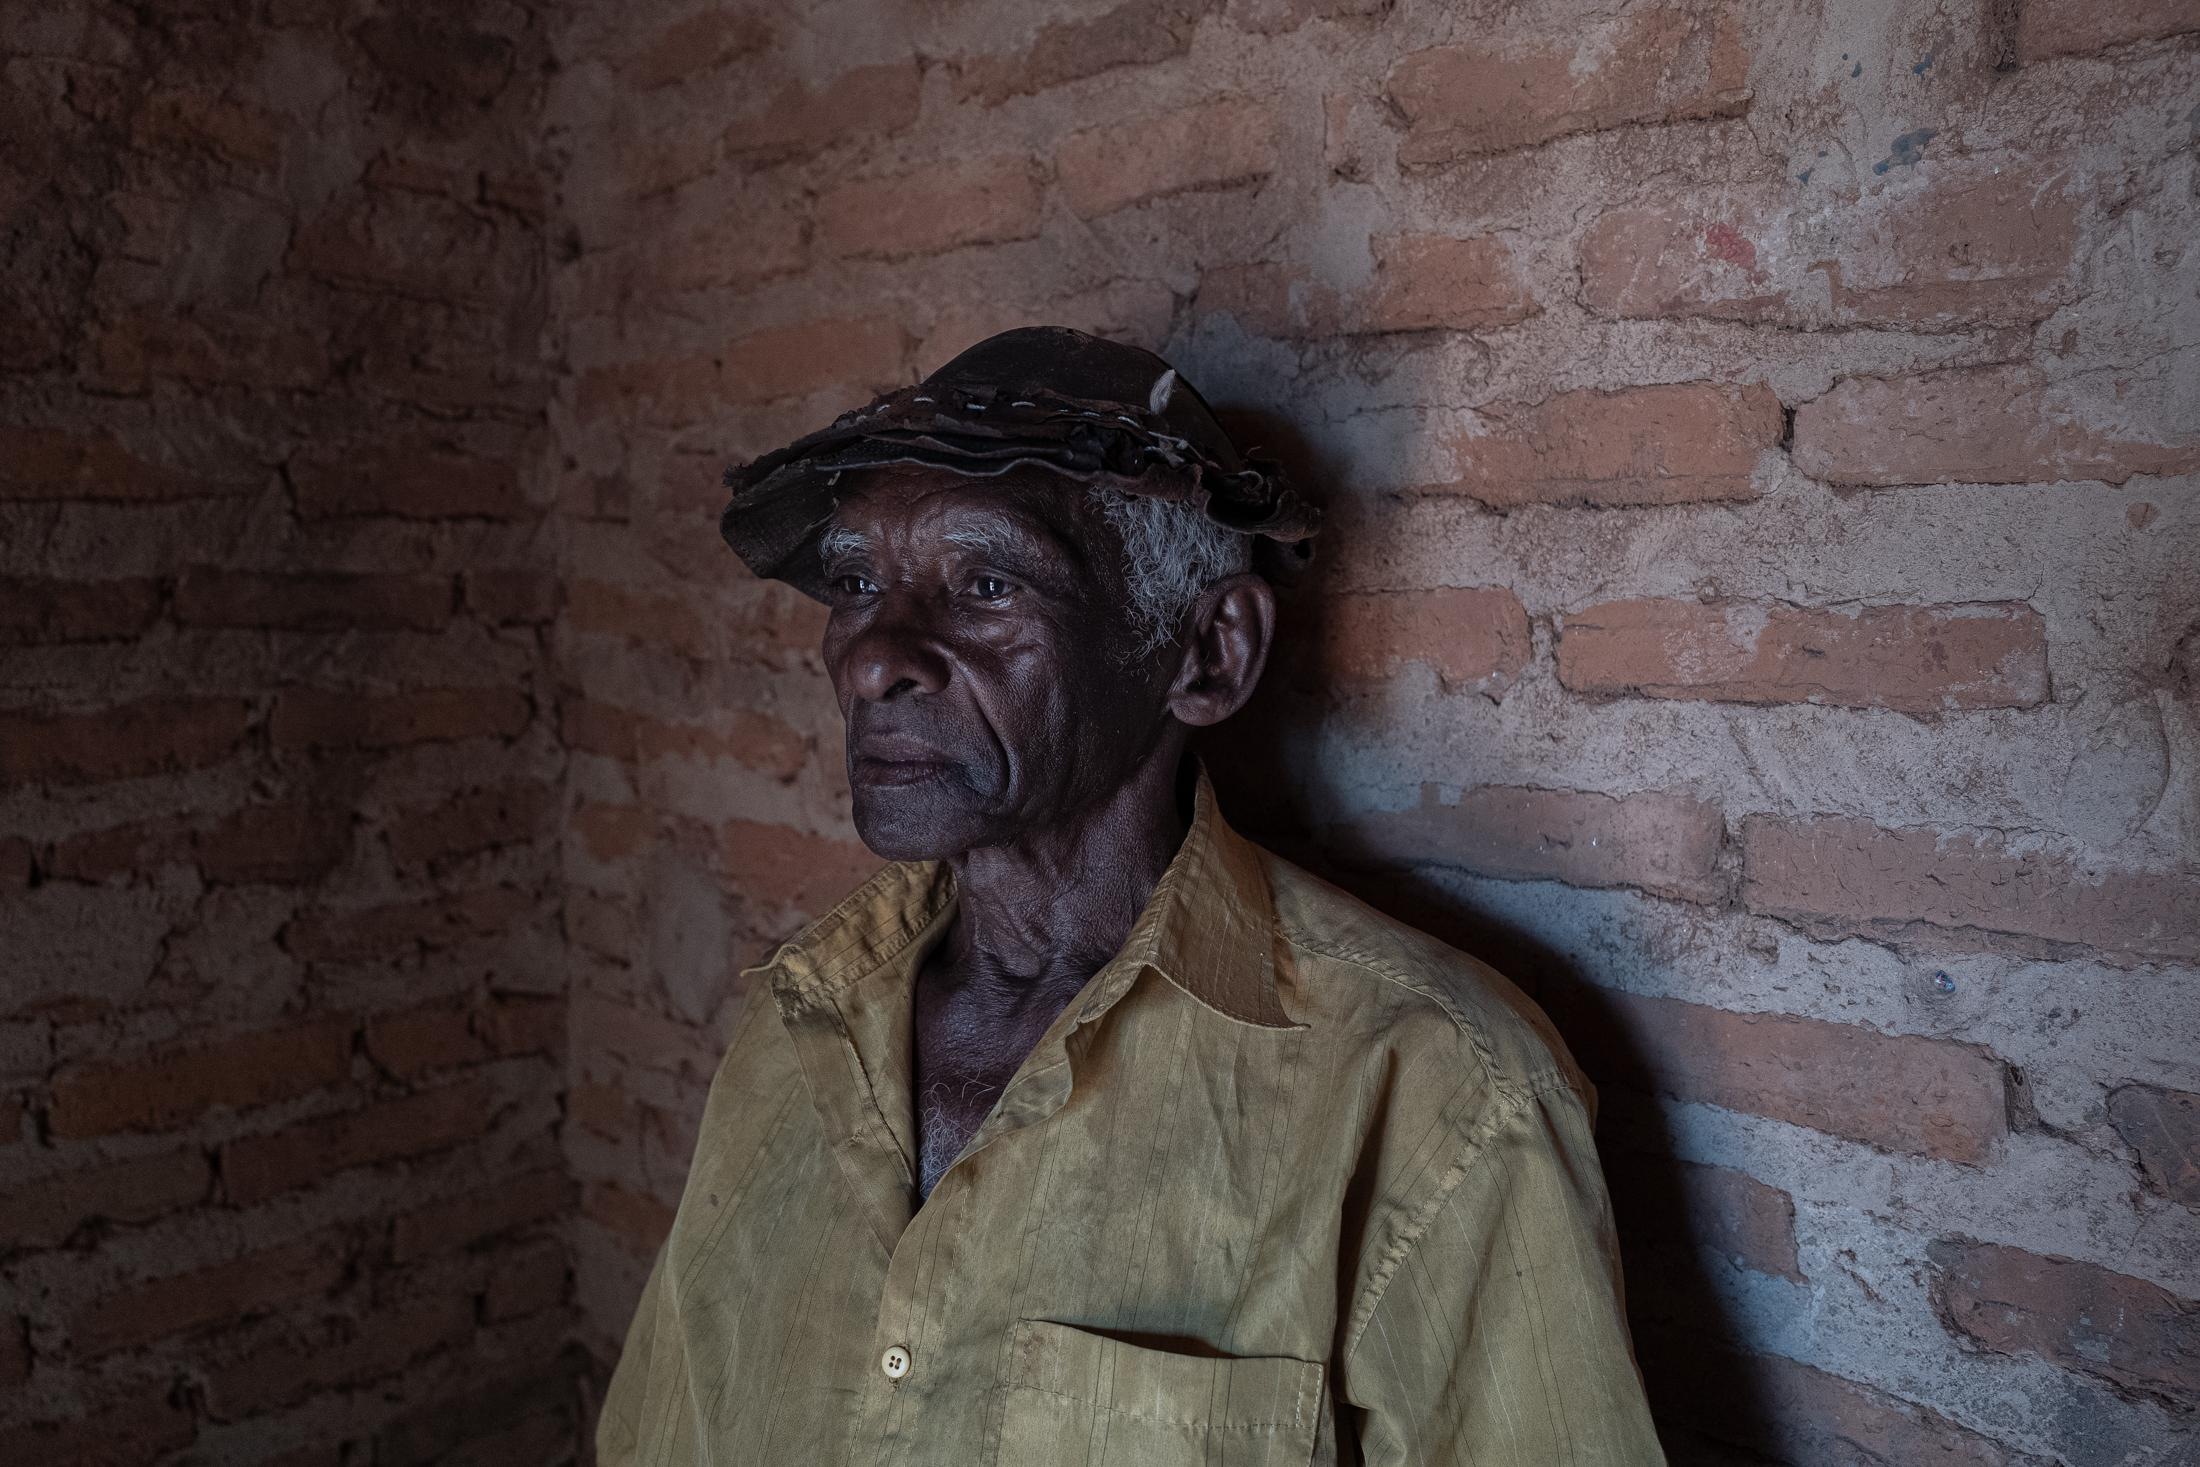 """José Rodrigues dos Santos, o """"Zé Capenga"""". He lives only with his wife. Their children and grandchildren left the territory in search of better opportunities."""